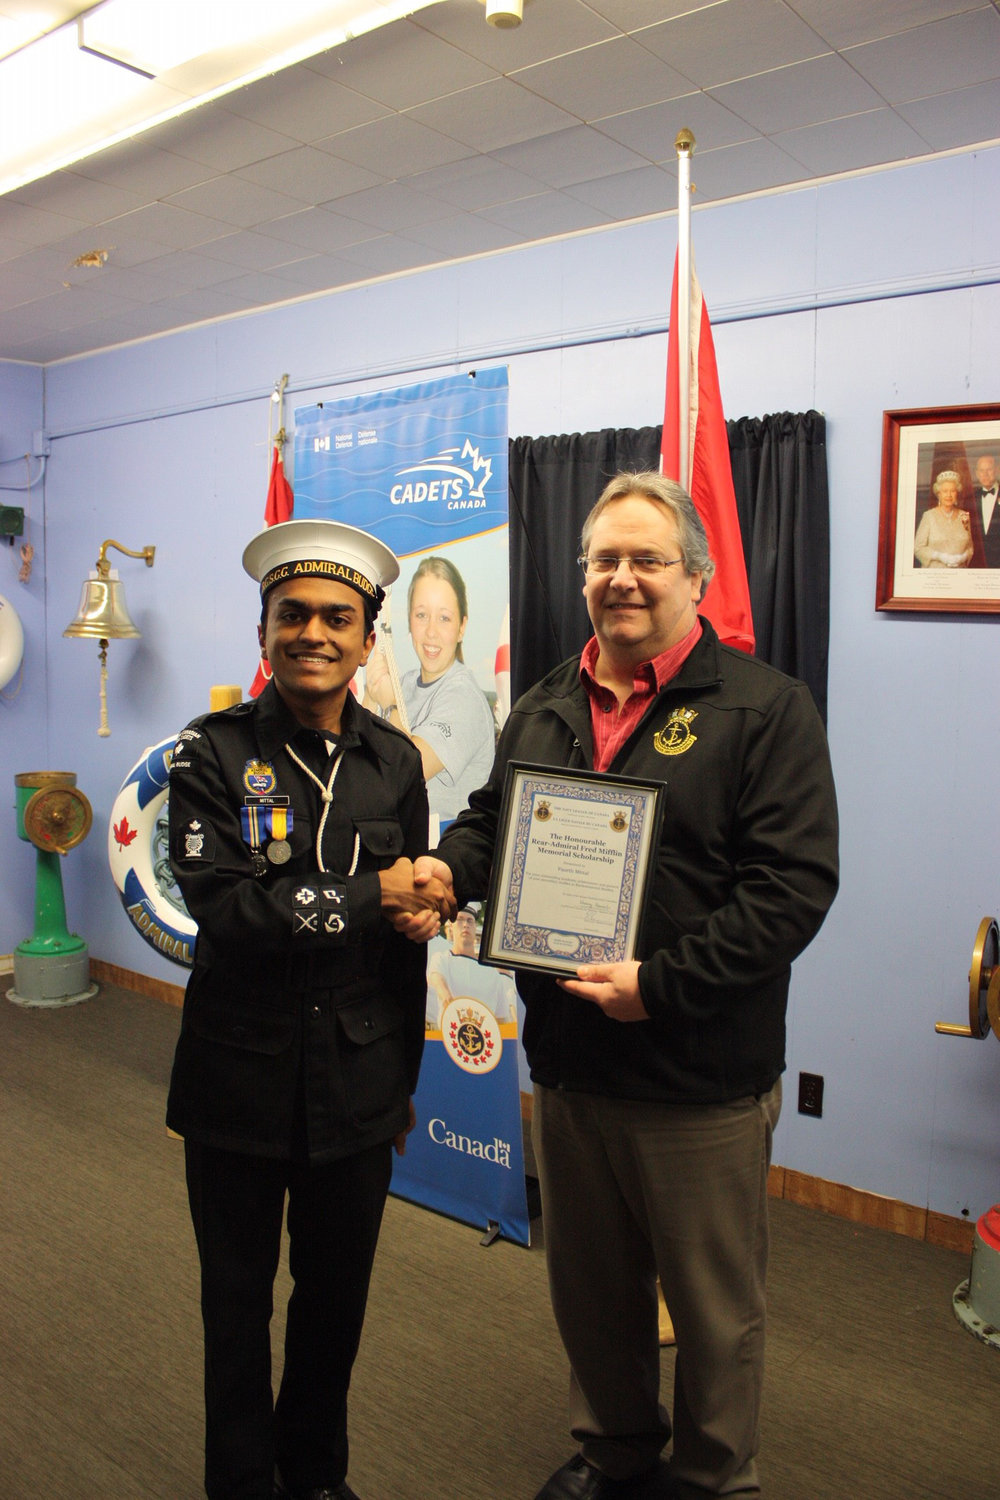 Vancouver Island Division President Brett Anderson presents The Honourable Rear-Admiral Fred Mifflin Memorial Scholarship to CPO1 Paarth Mittal on behalf of The Navy League of Canada.